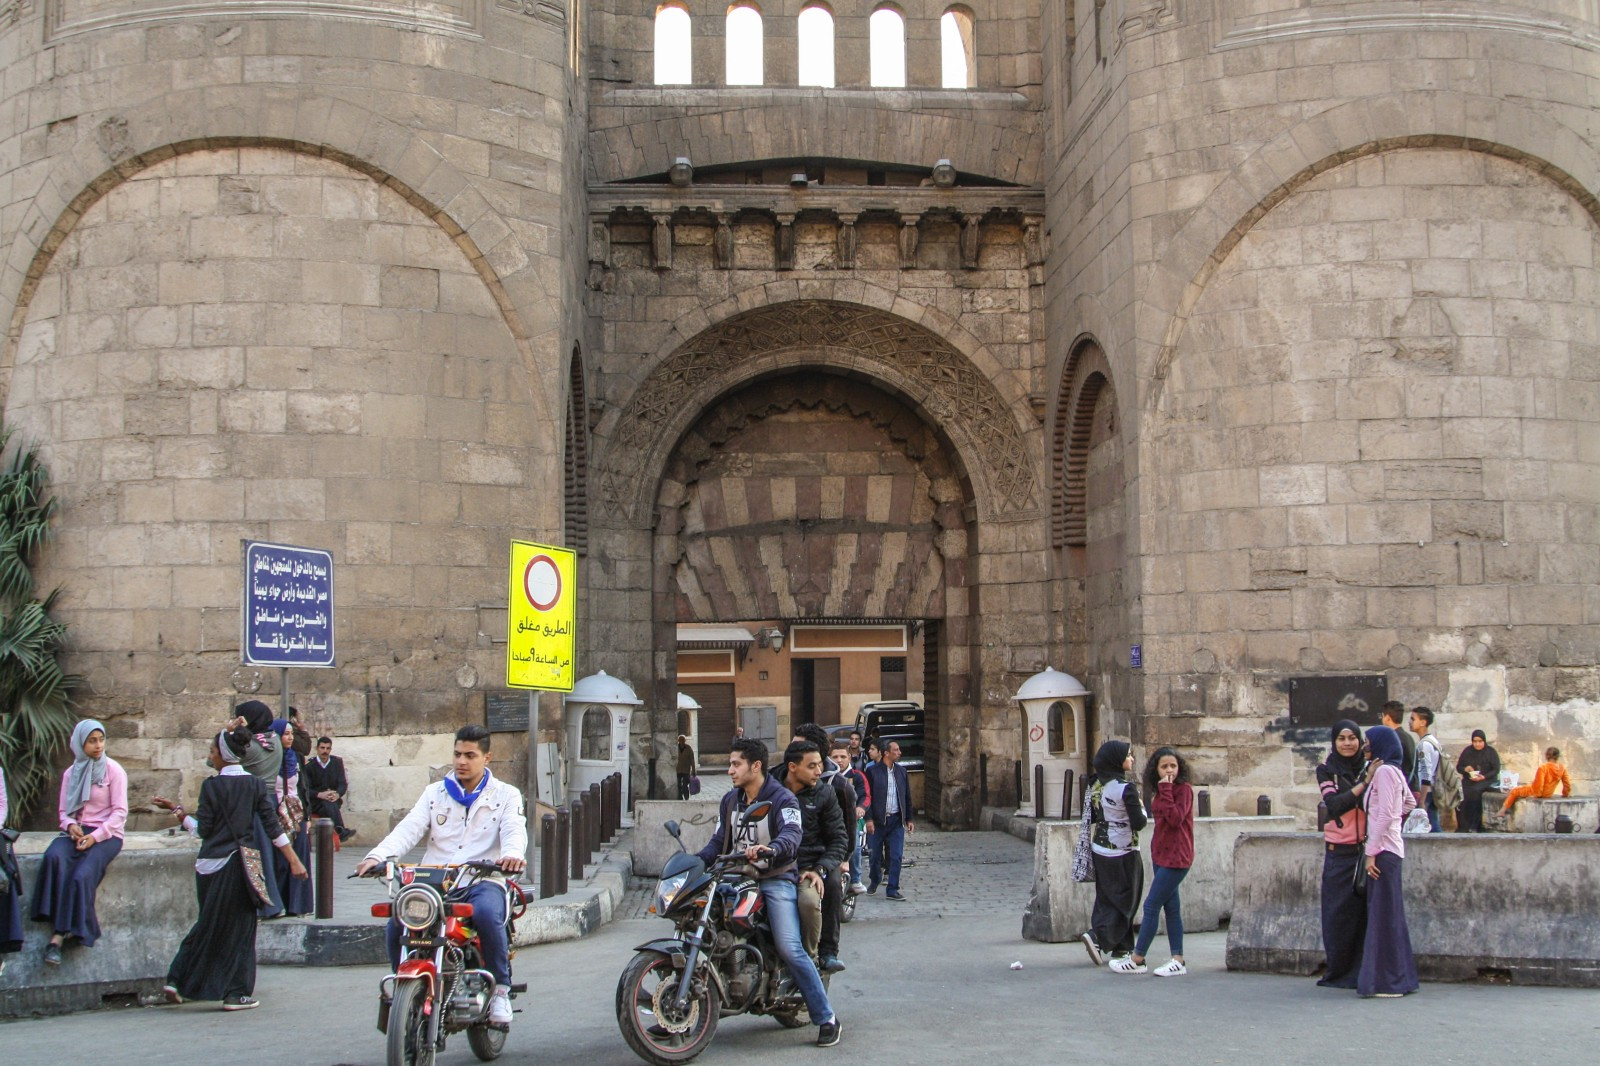 Bab al-Fotouh (Gate of the Conquests), one of the surviving gates on the old city walls. Credit Enas El Masry